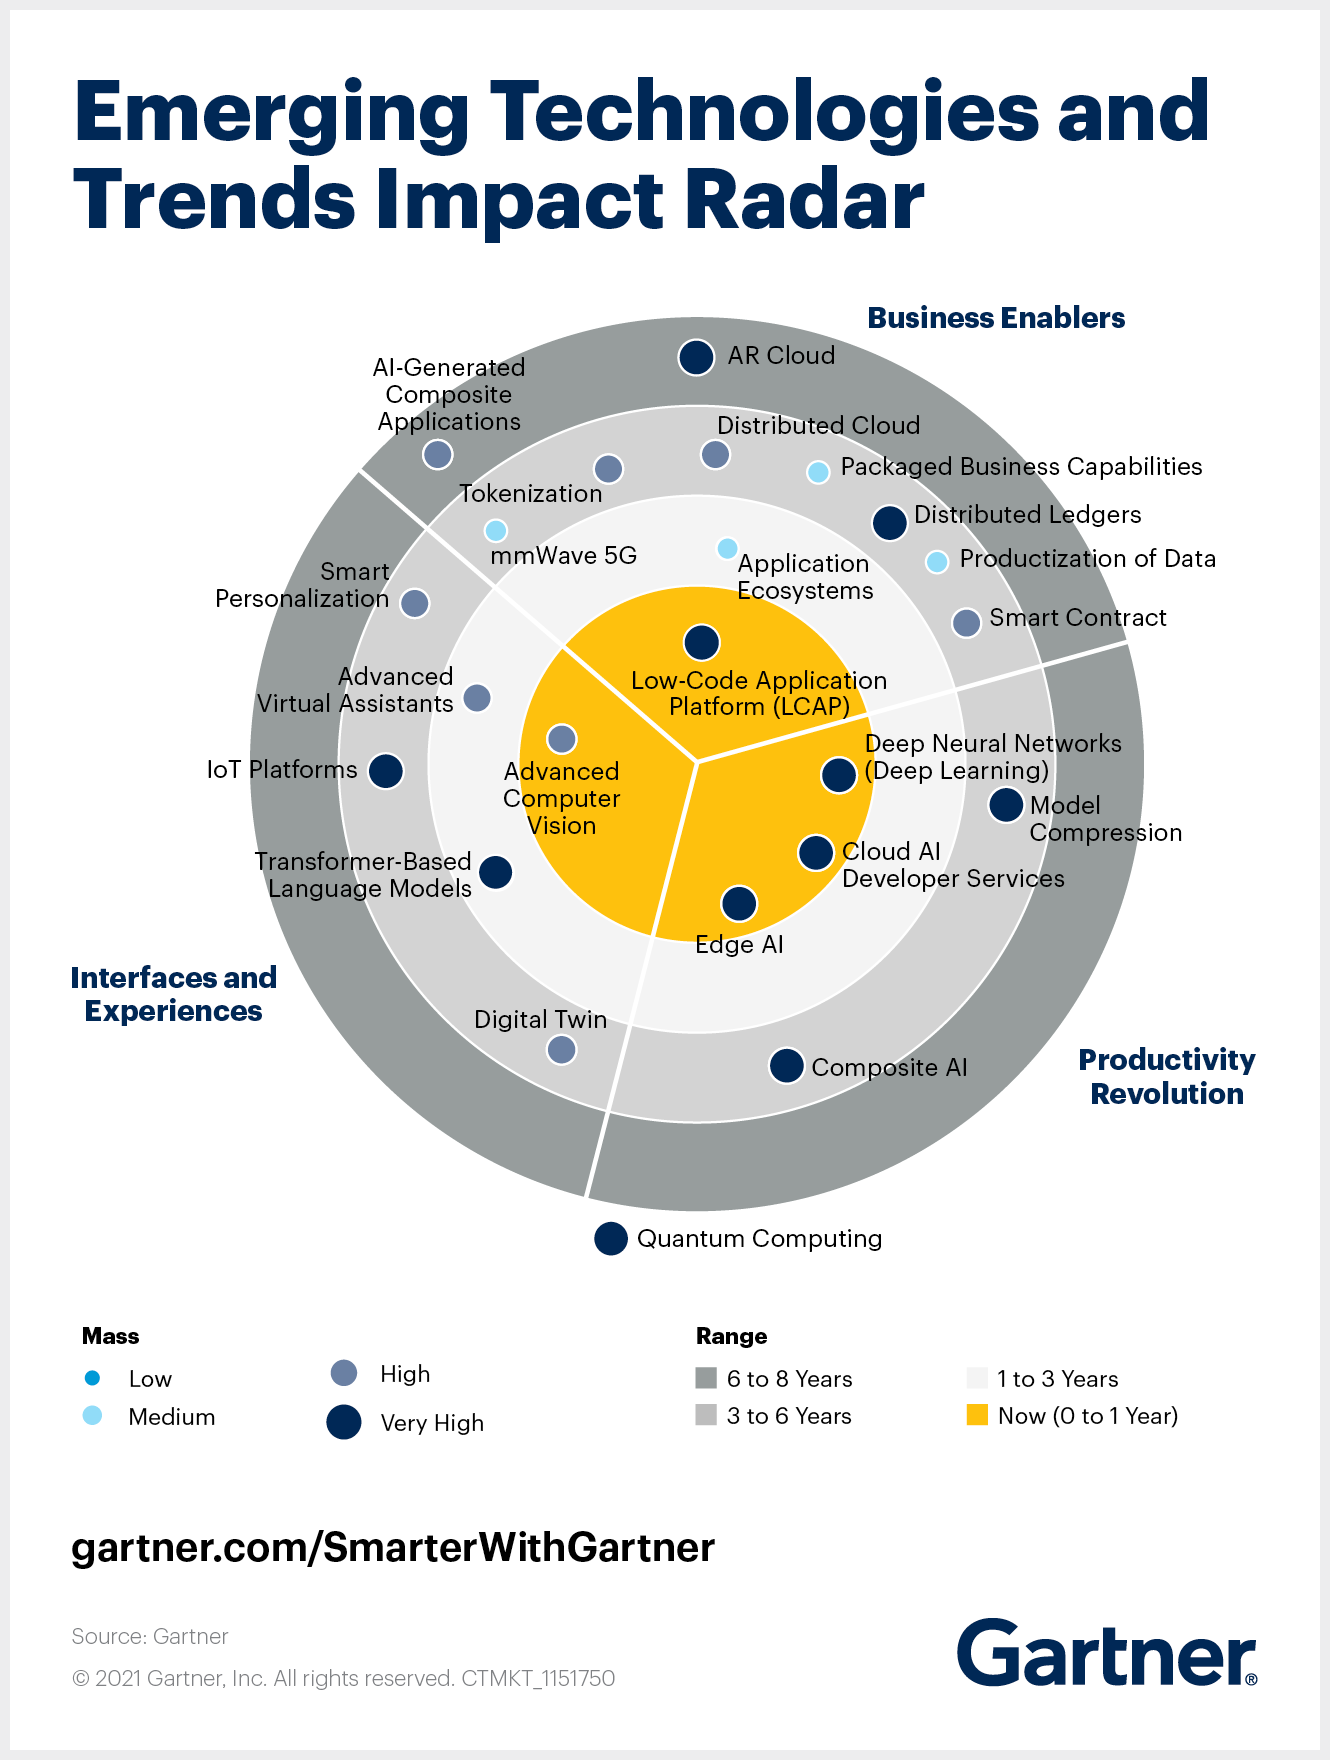 Gartner Emerging technologies and trends impact radar 2021 highlights emerging technologies for product leaders.